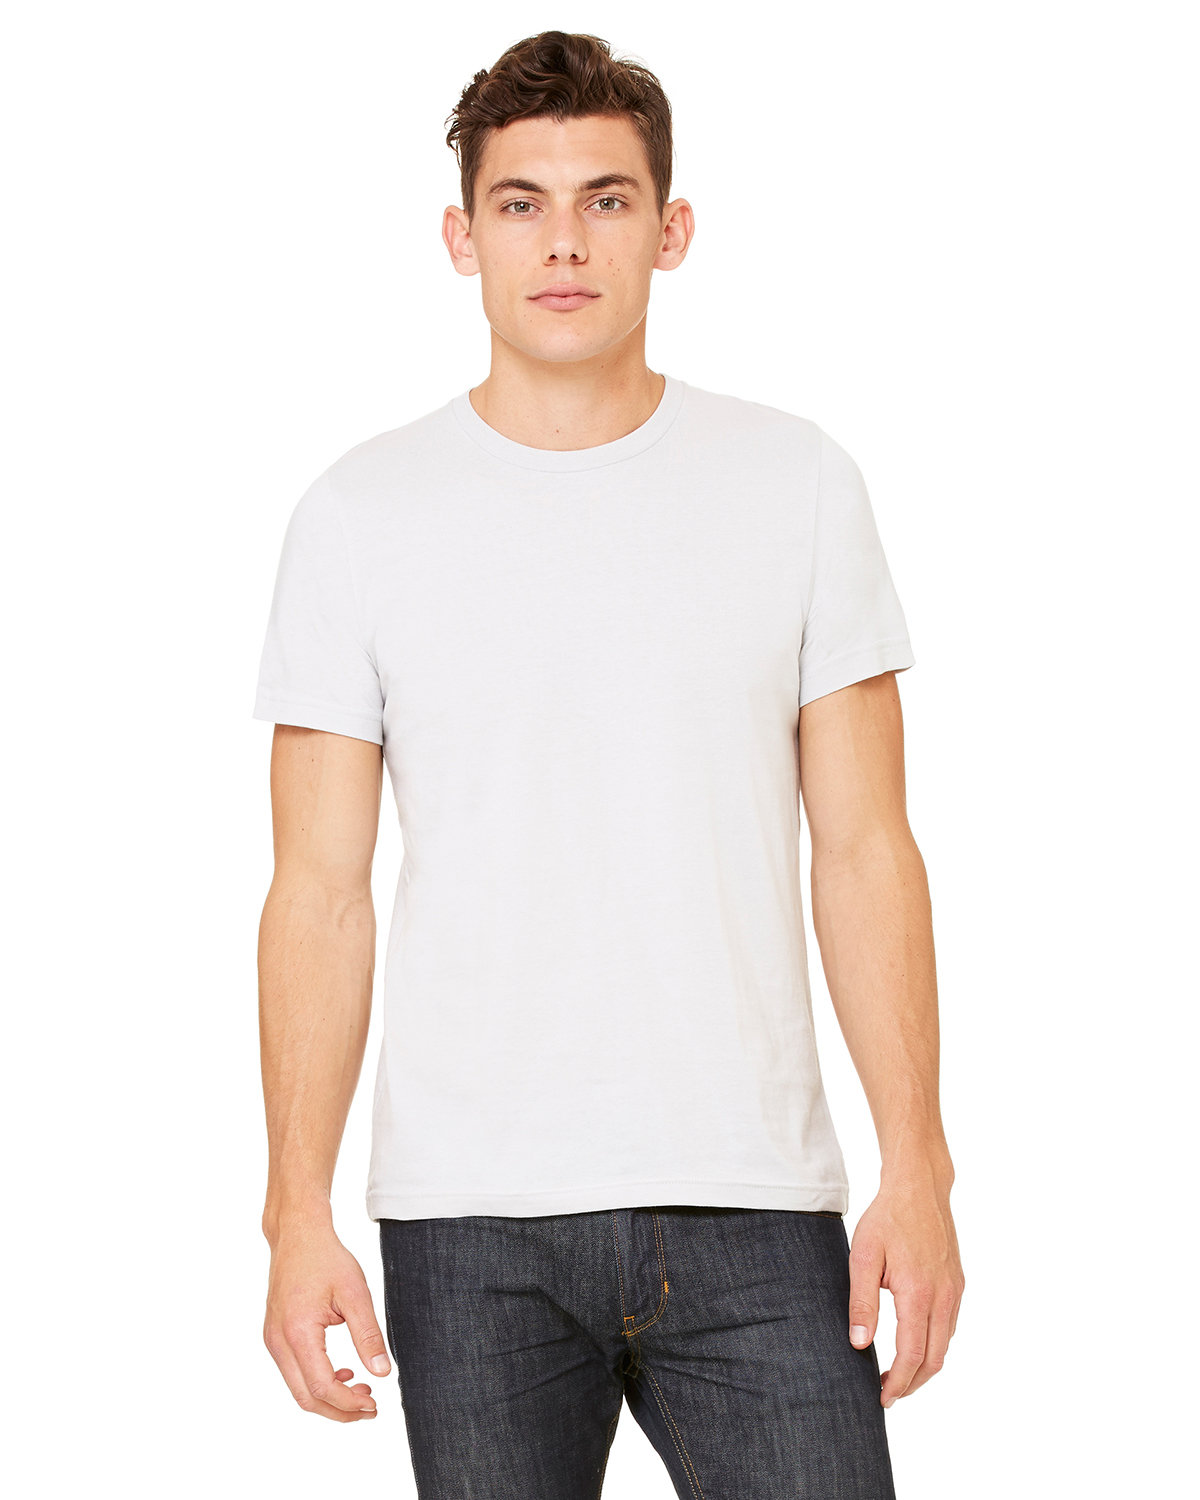 Bella + Canvas Unisex Made In The USA Jersey T-Shirt SILVER